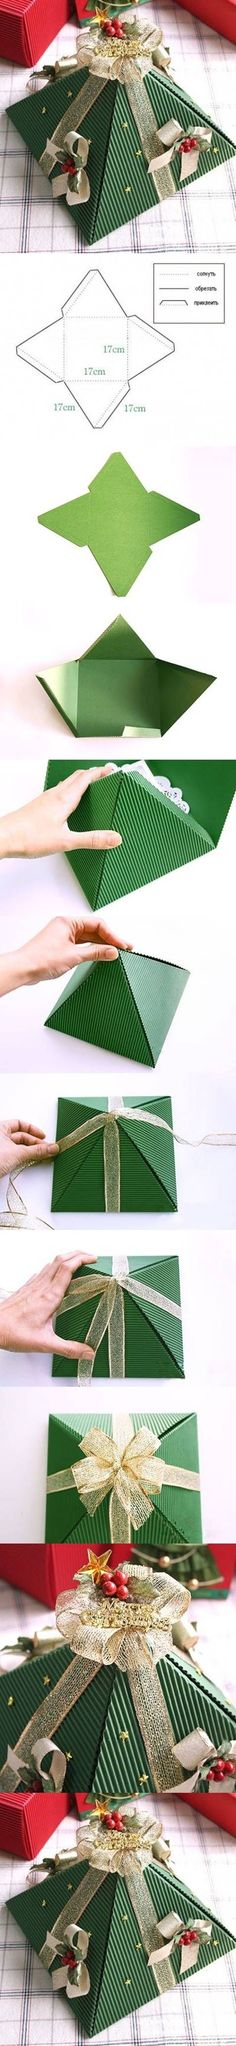 DIY Pyramid Christmas Gift Boxes diy craft crafts christmas how to tutorial craft gifts christmas gifts christmas crafts christmas craft gift ideas Christmas Gift Box, Christmas Gift Wrapping, Christmas Is Coming, Christmas Trees, Diy Paper, Paper Crafts, 242, Diy Box, Holiday Crafts